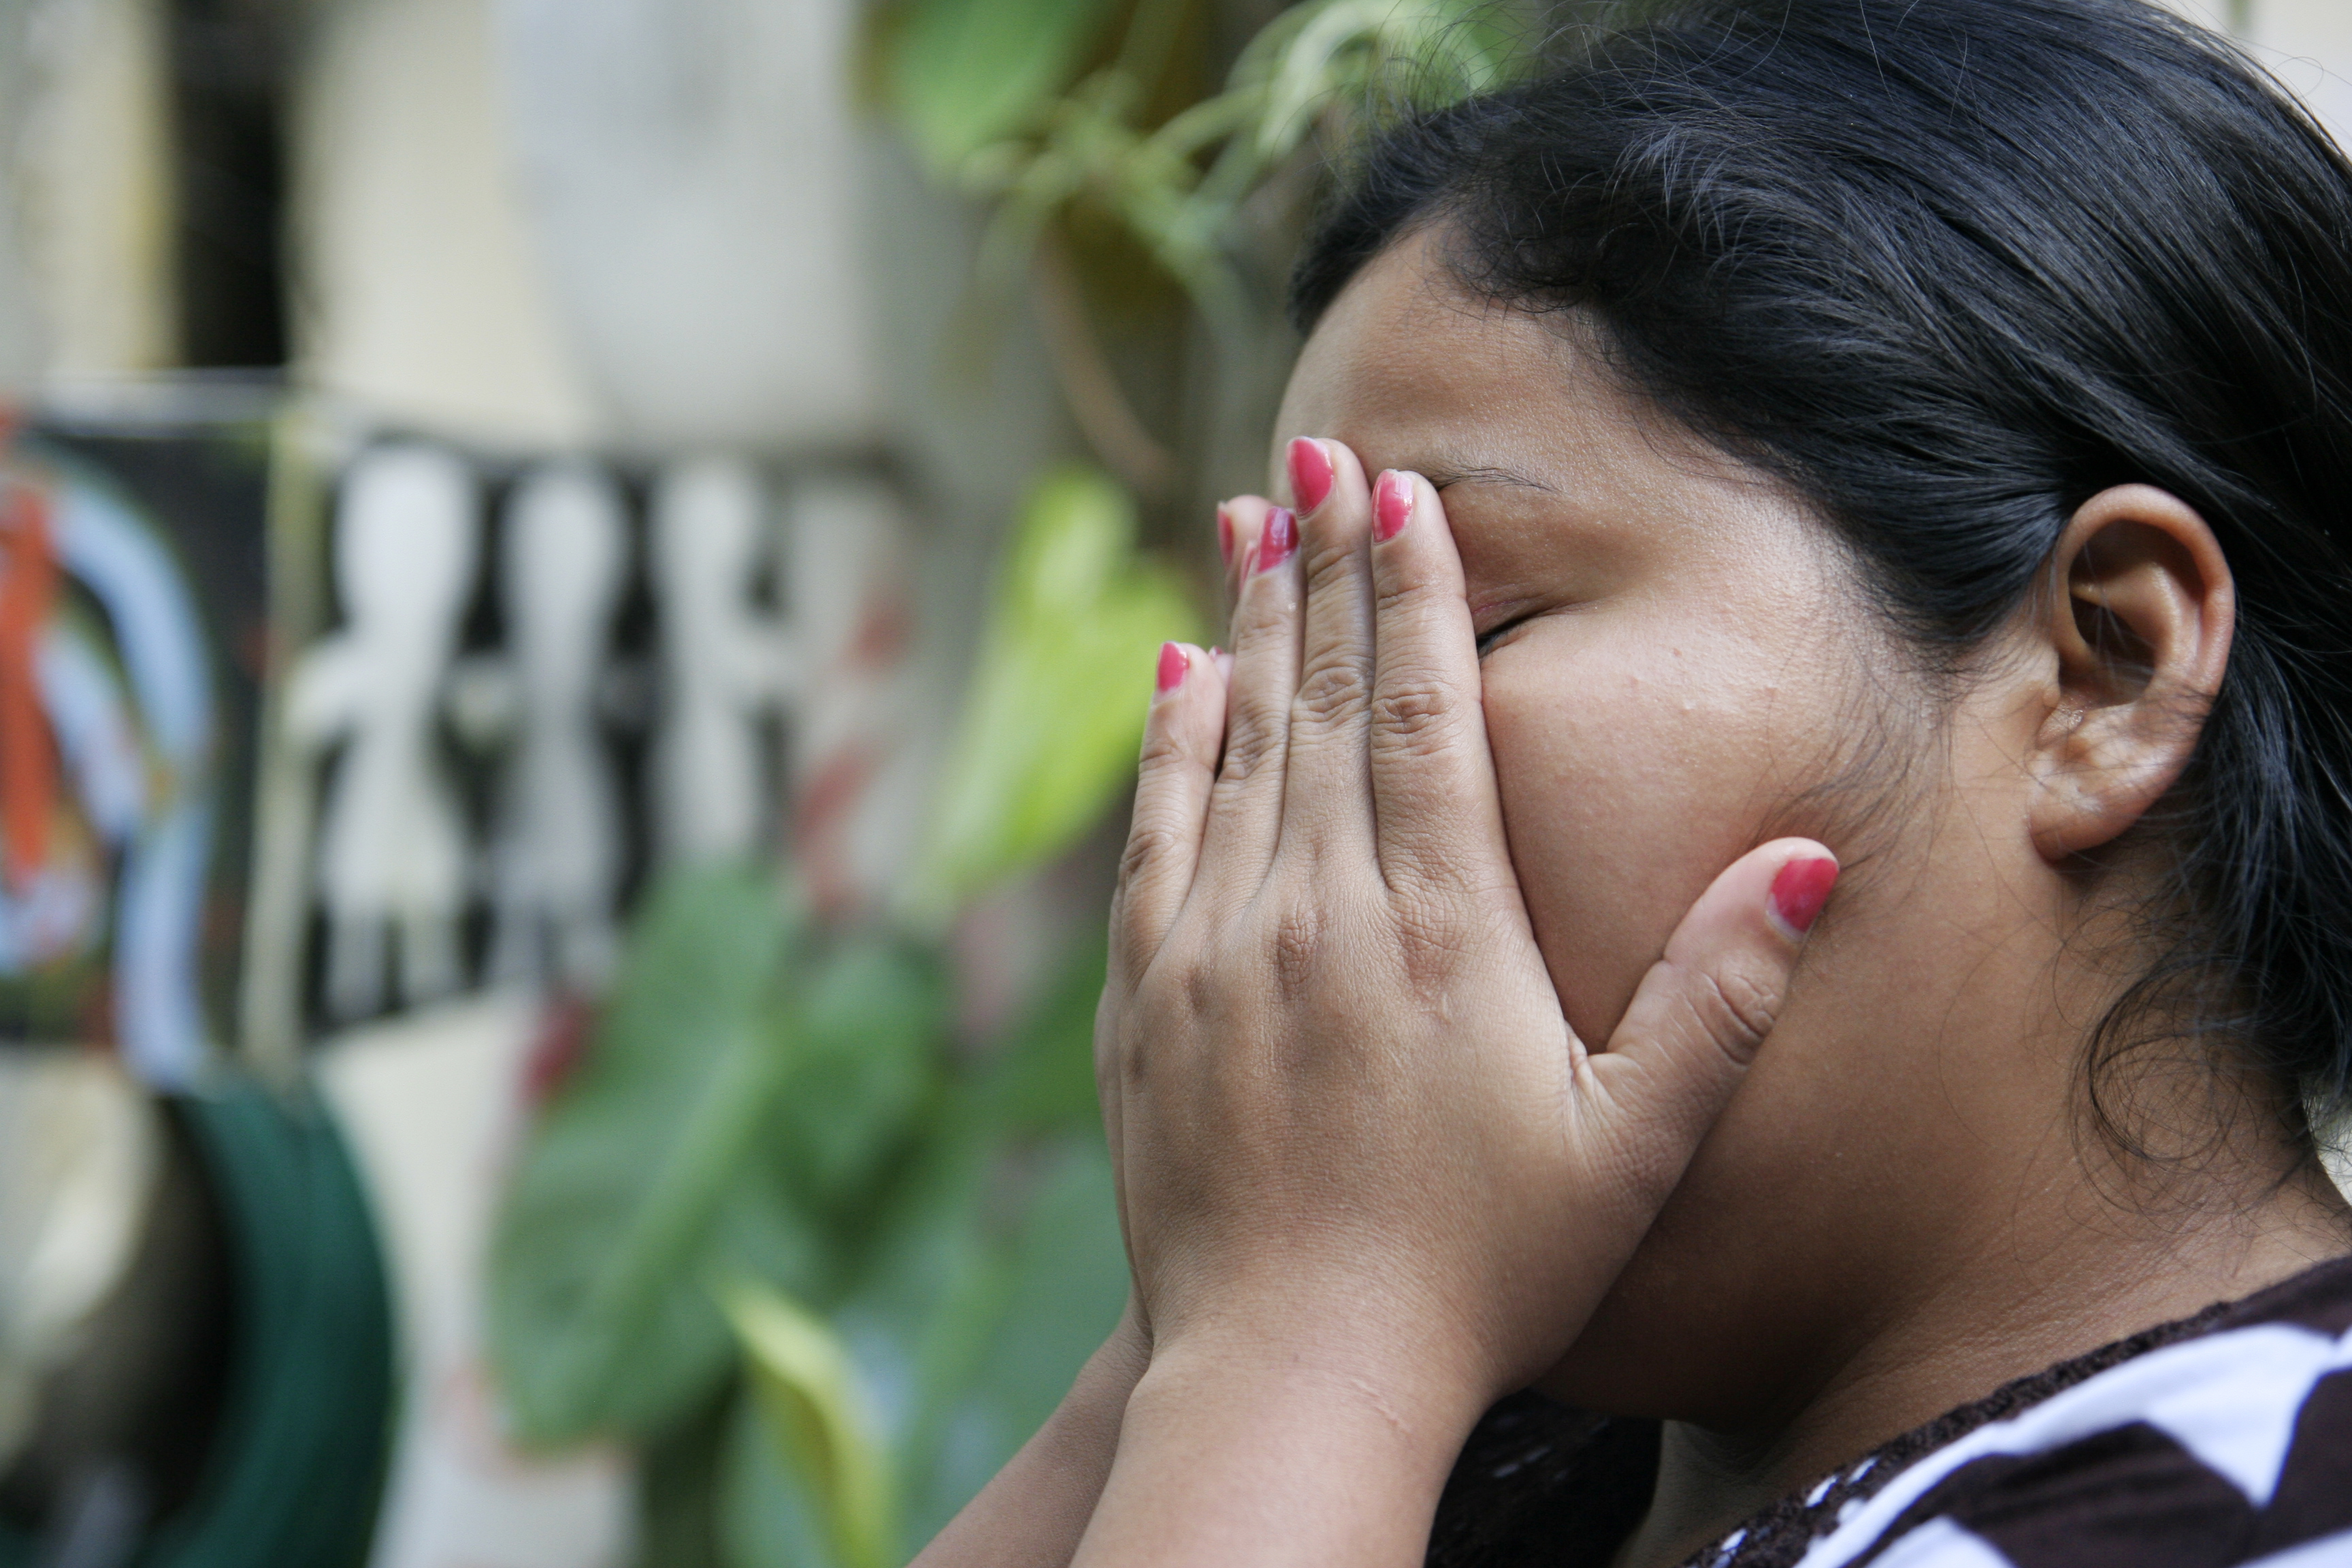 El Salvador: Marlene was accused and charged with having an abortion after she had a miscarriage when